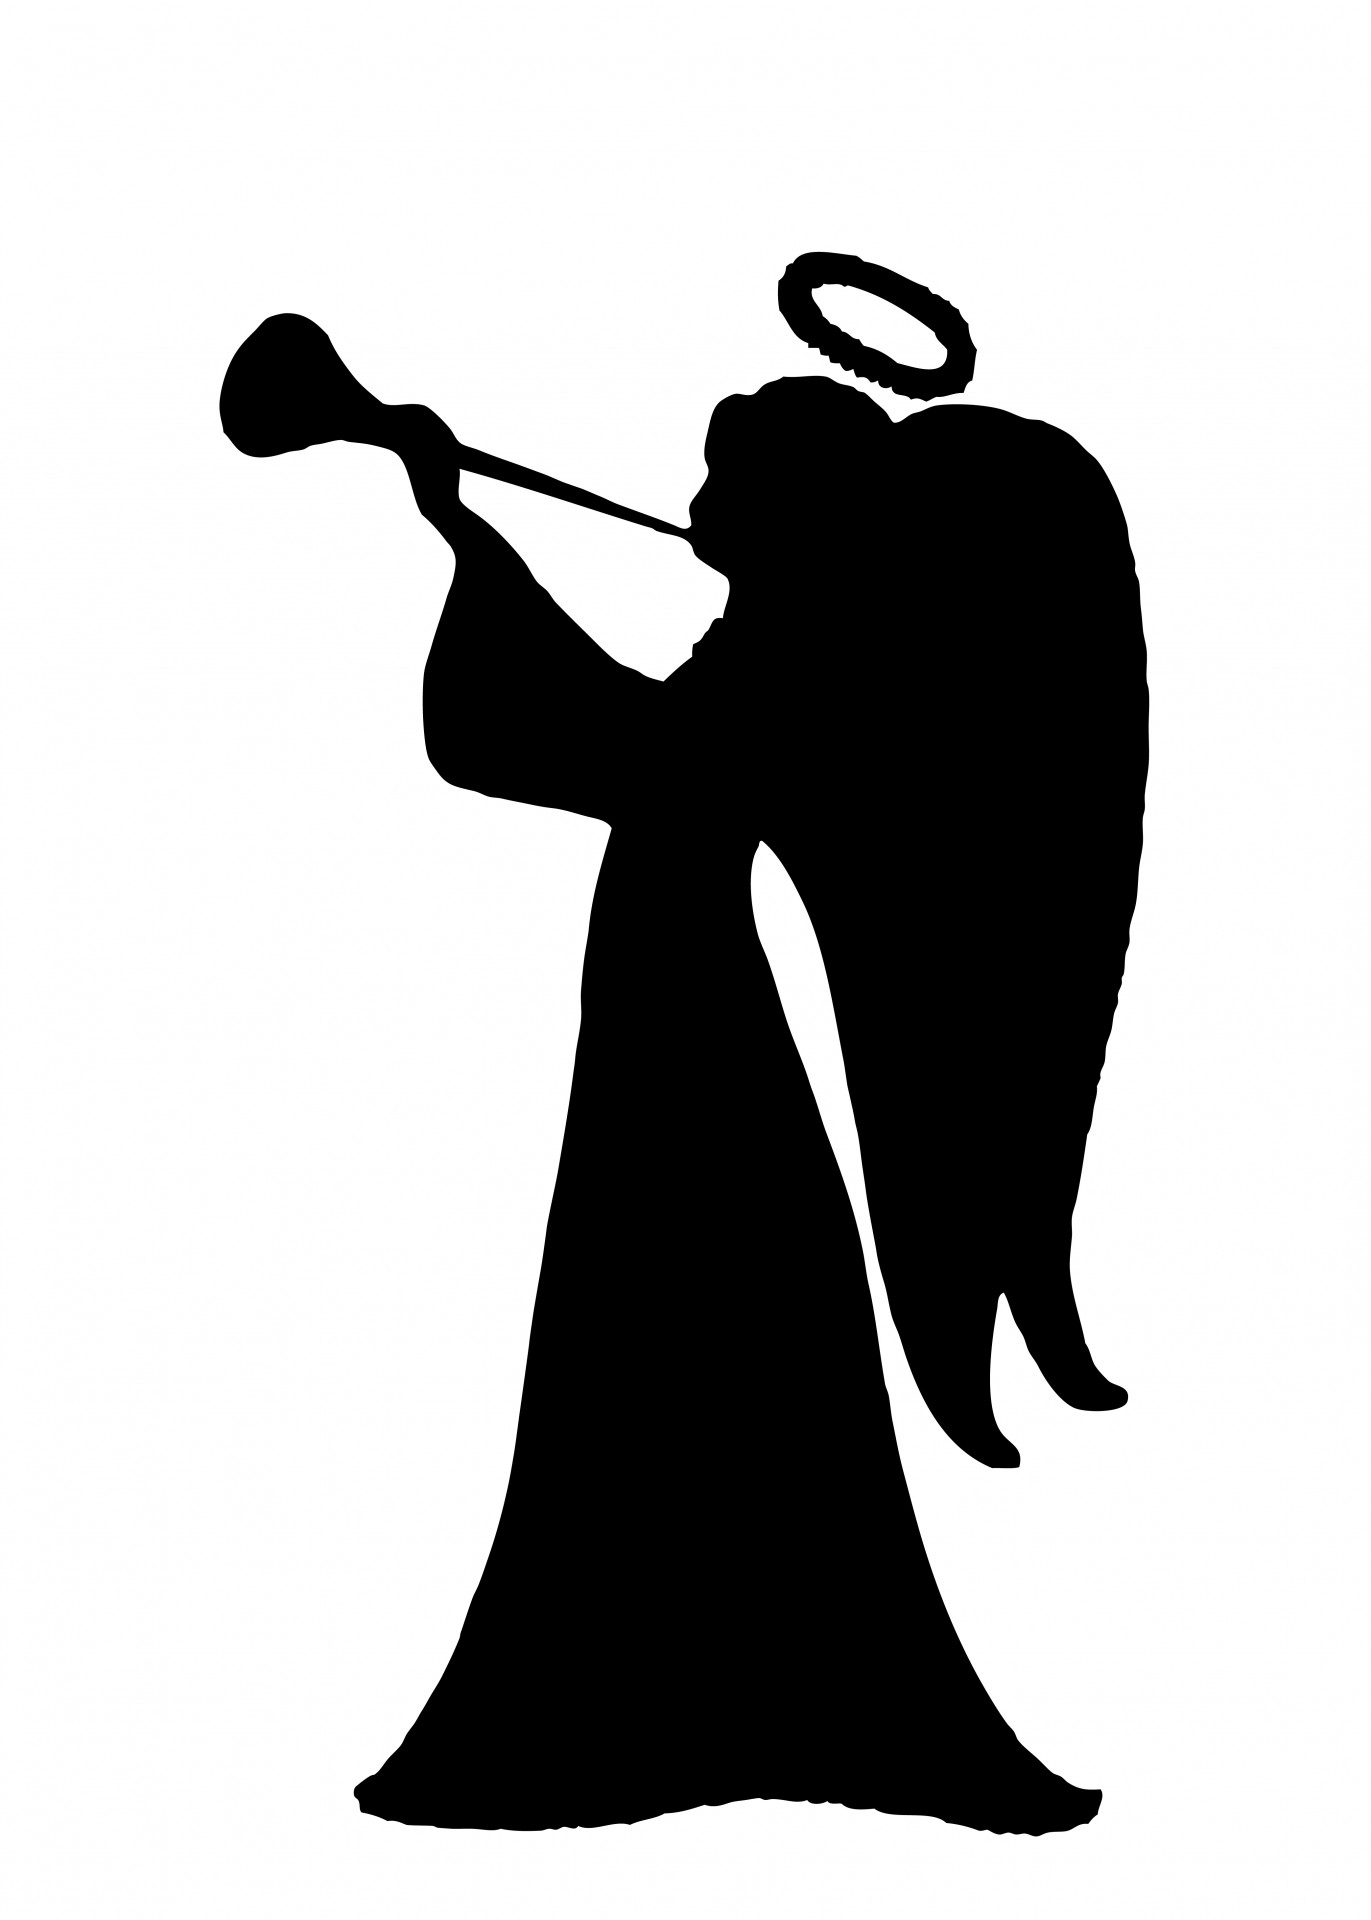 hight resolution of 1371x1920 angel silhouette clipart free stock photo